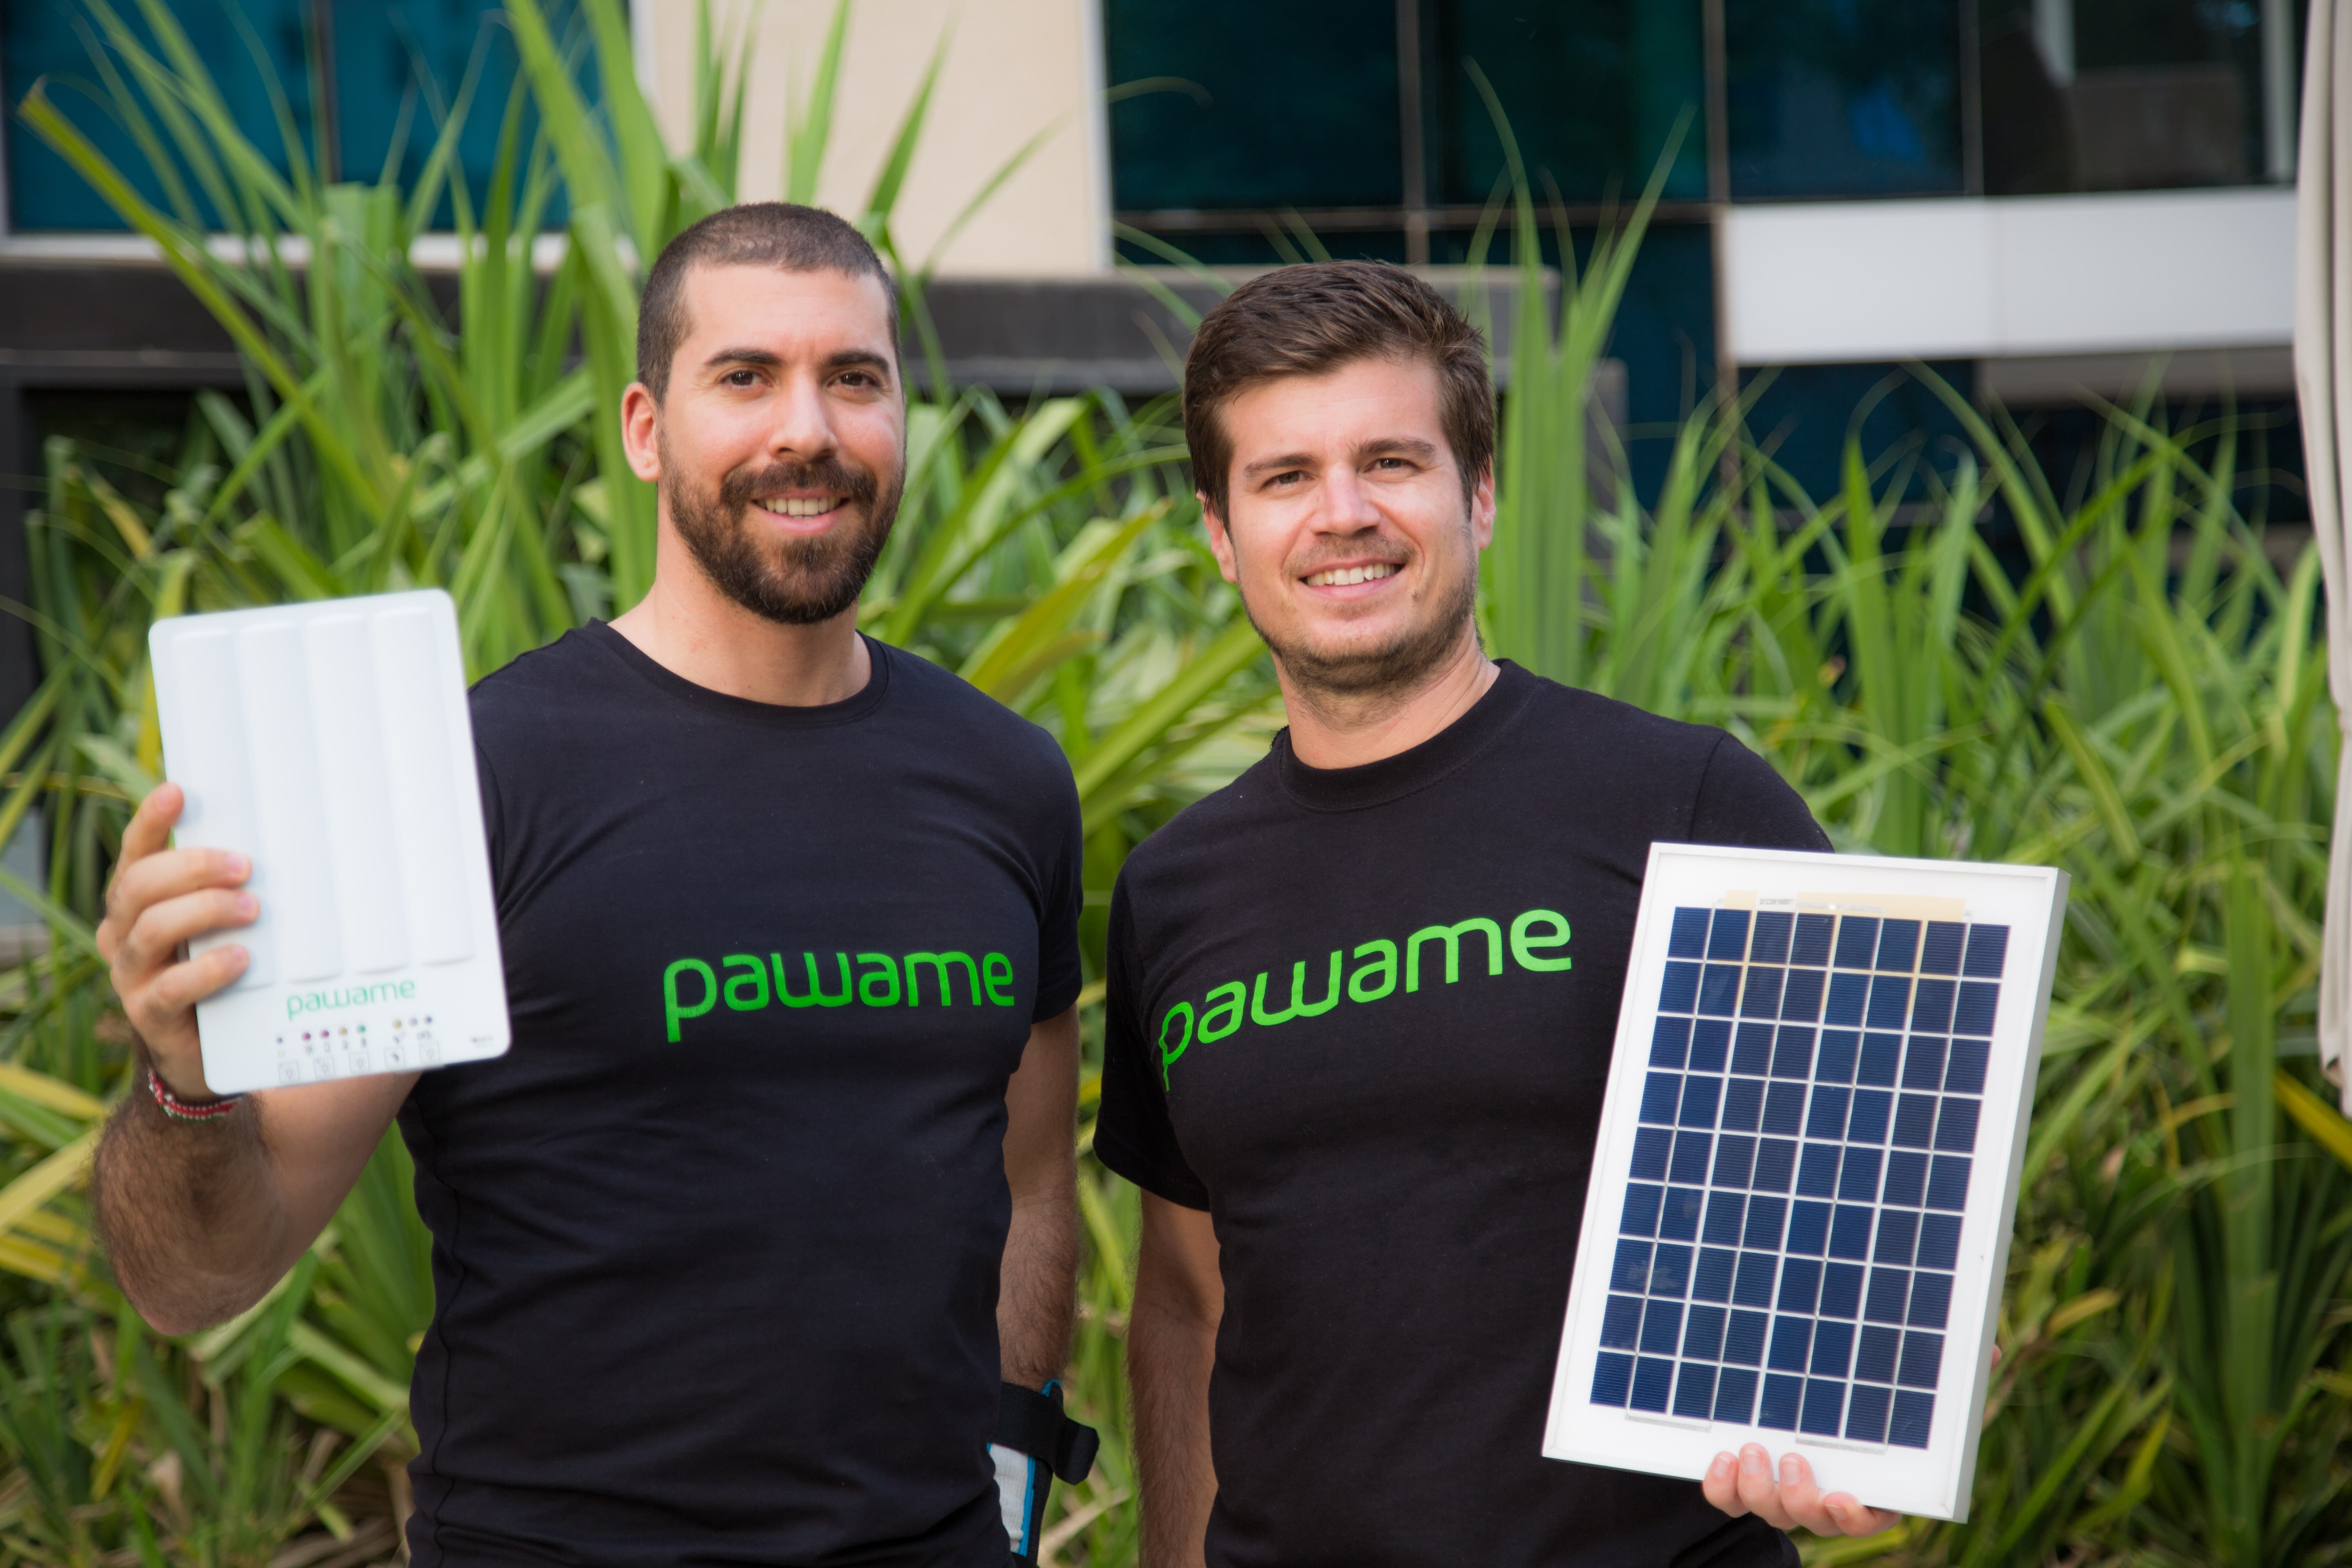 Pawame Co-Founder On Why They Chose Debt Financing Over An Equity Round